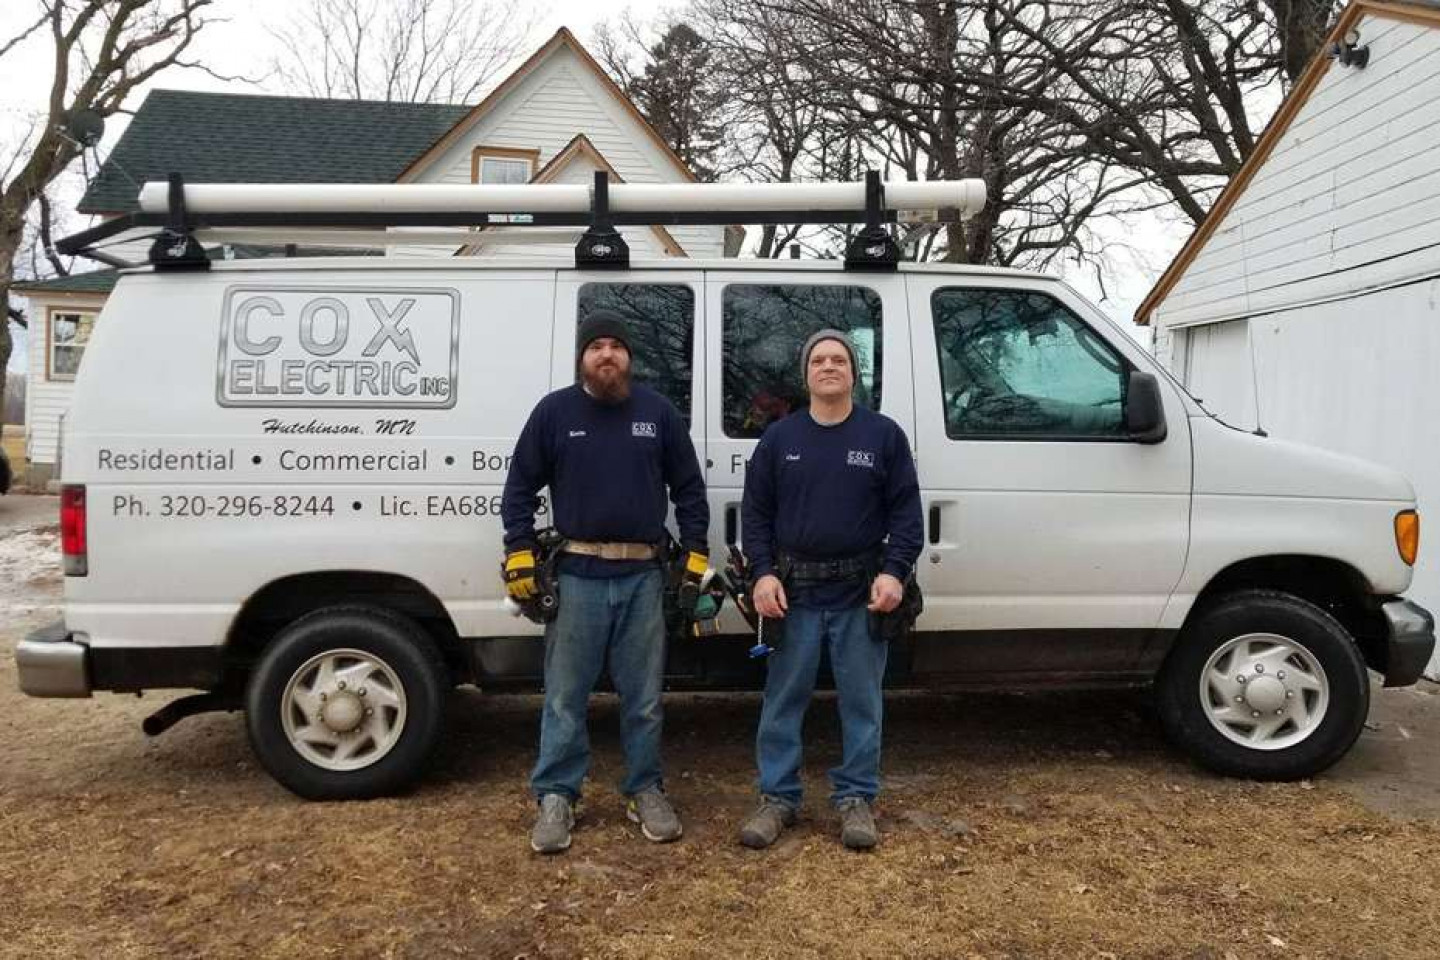 Chad and Jamie Cox, electricians in MN.